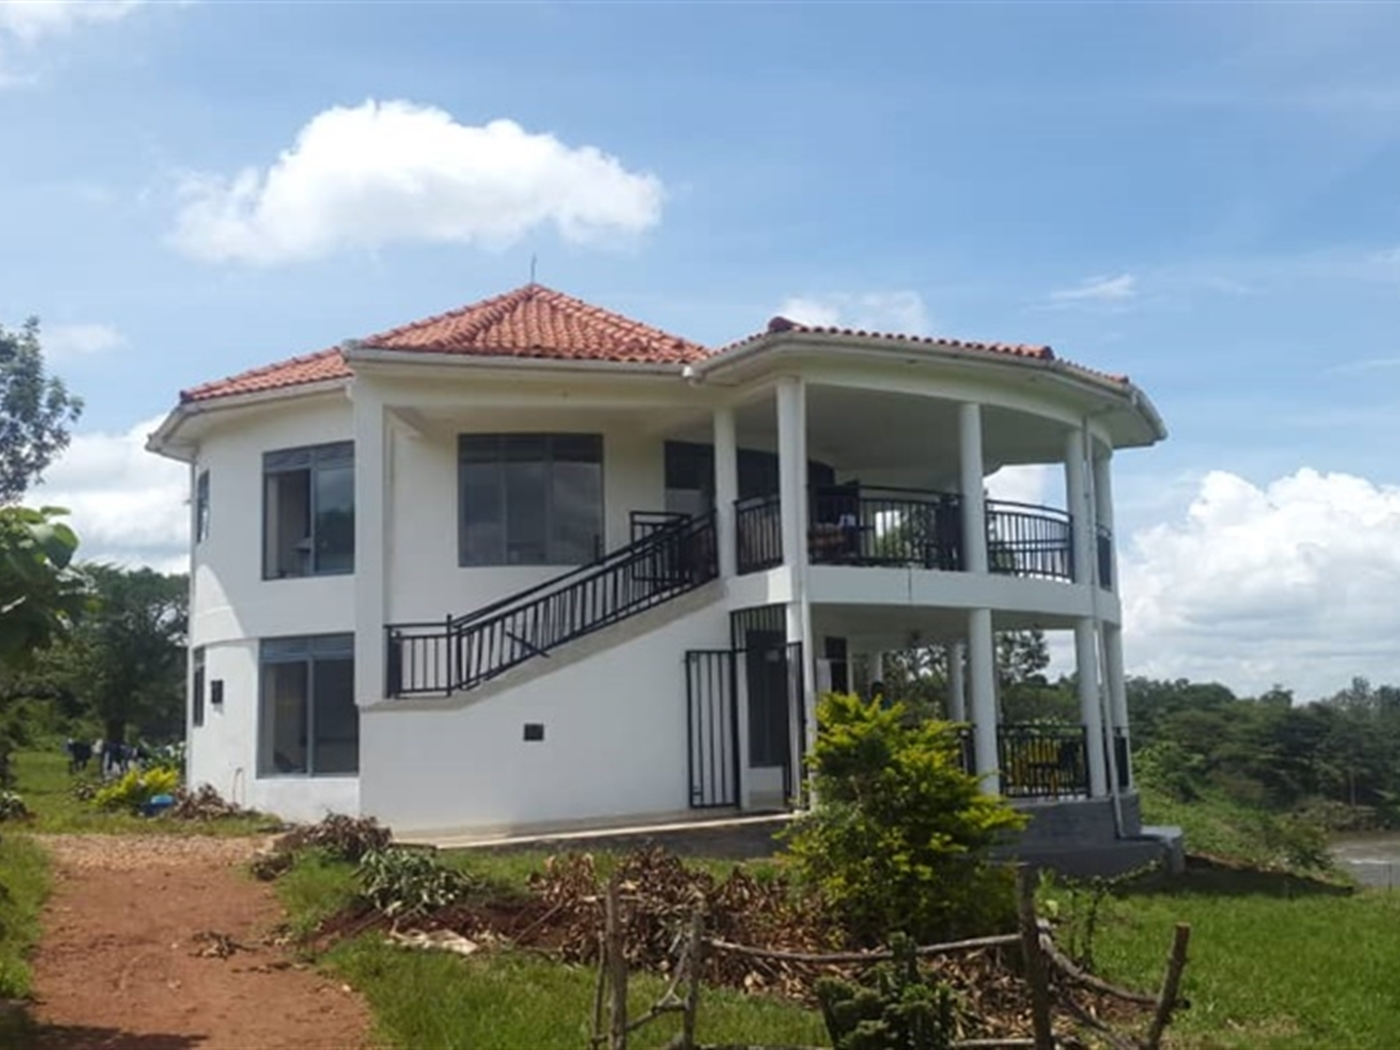 Storyed house for rent in Bujagali Jinja